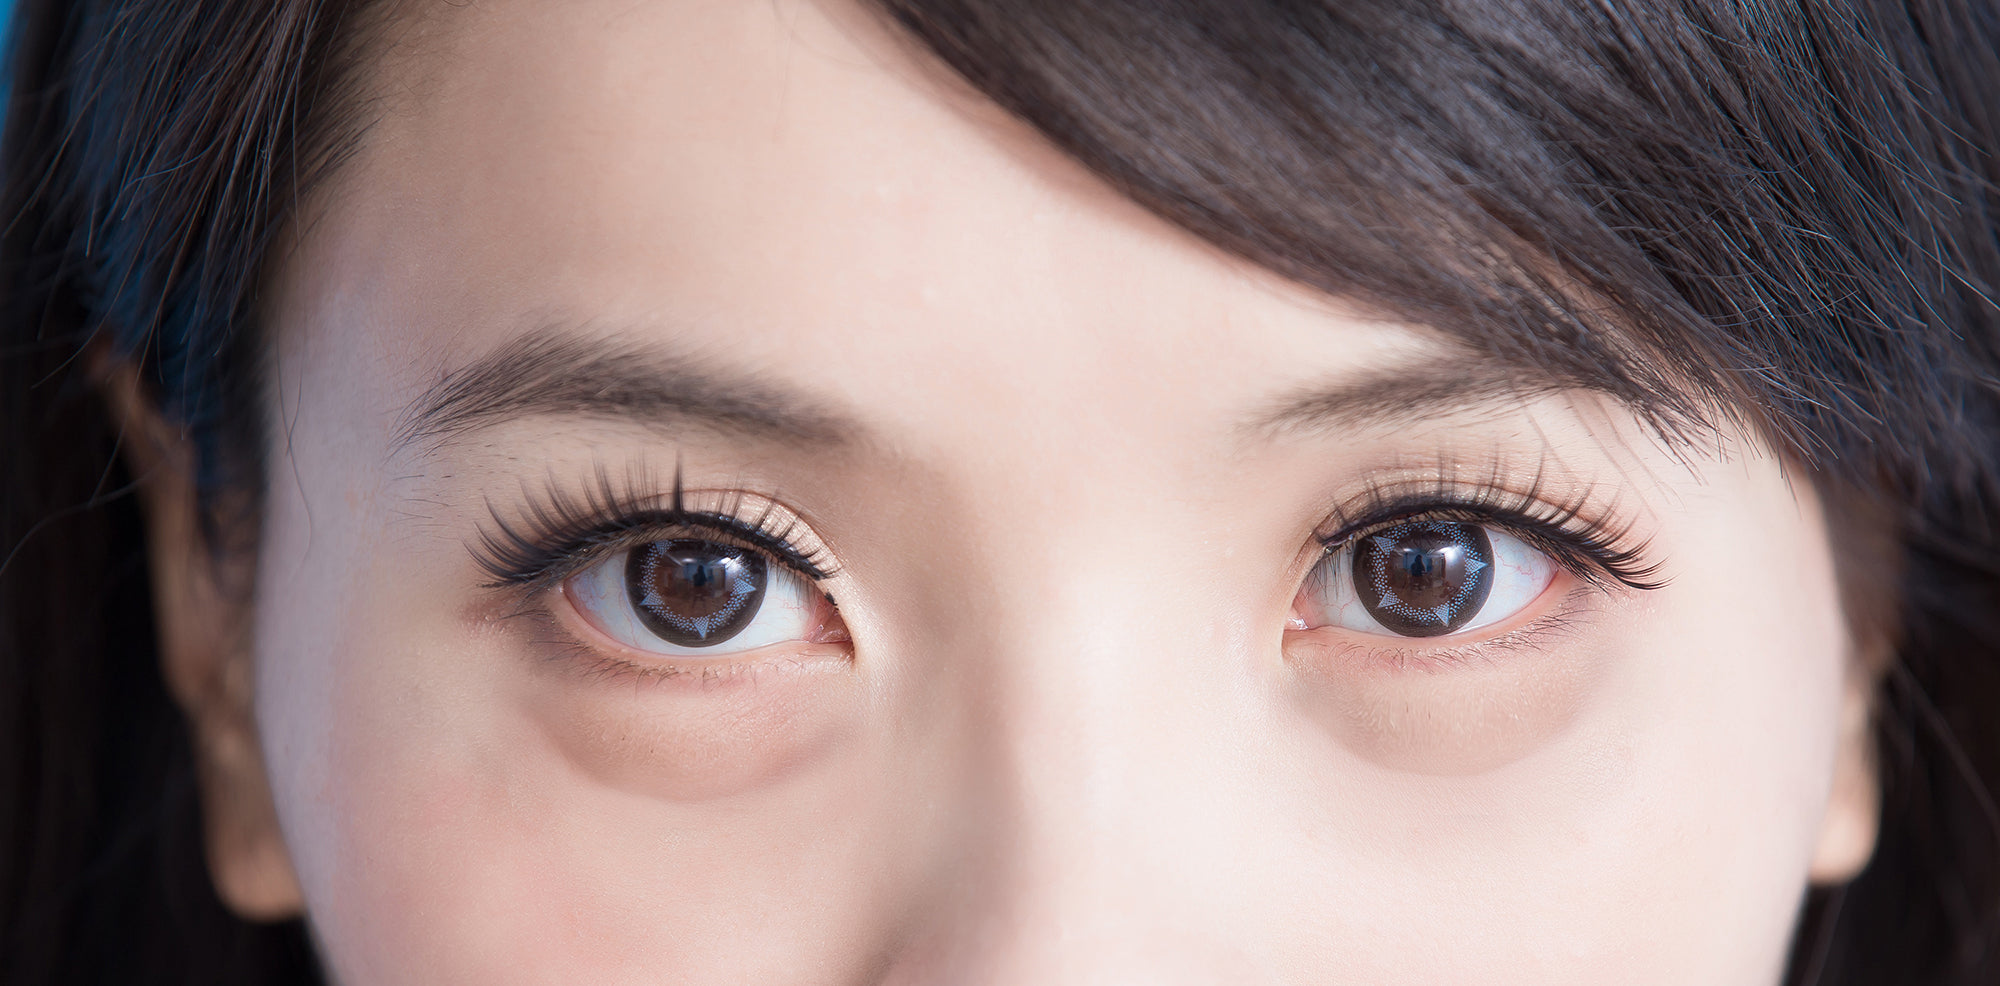 Treatment for Eye Bags -Eye bags is one of the most common skincare complaints. There are some factors that are considered to be potential causes of eye bags, such as genetics, aging, etc. BeautyAcademyHK